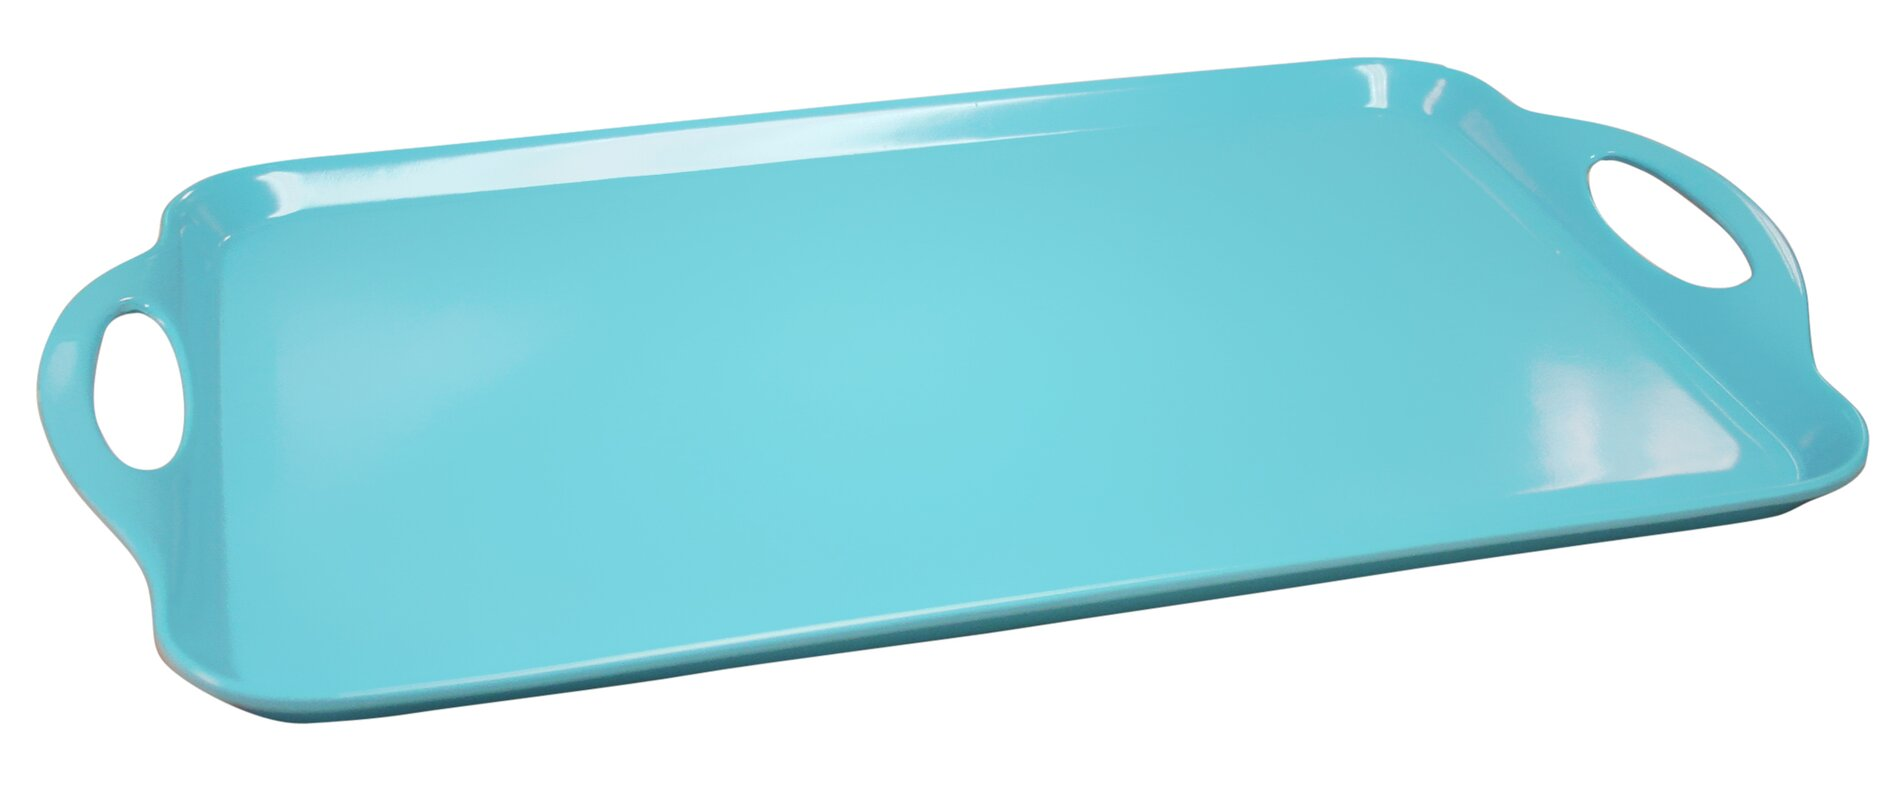 Rectangular Melamine Serving Tray